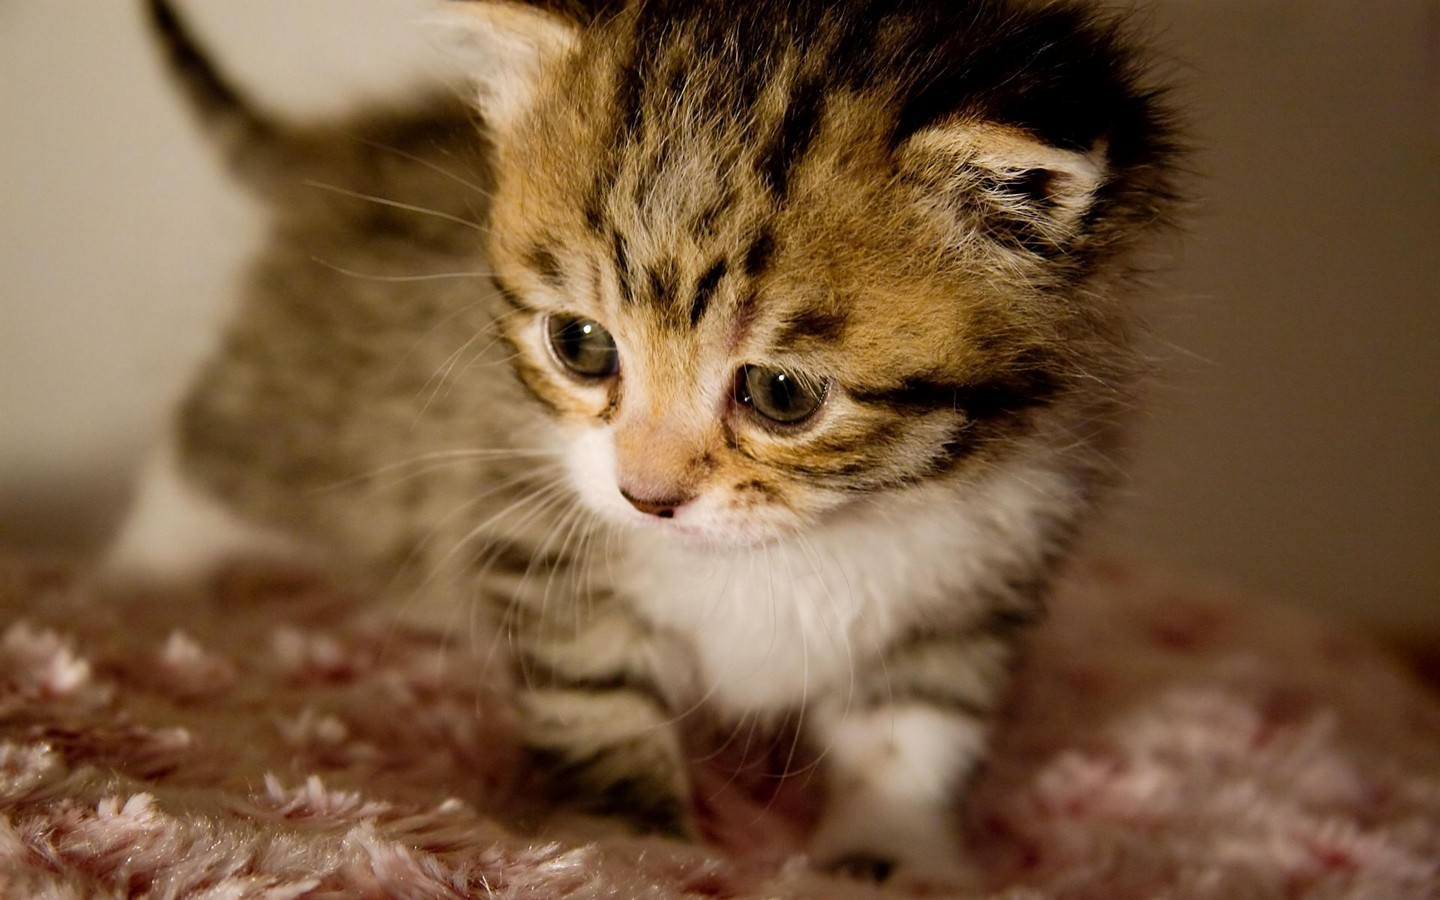 http://wondrouspics.com/wp-content/uploads/2011/12/Cute-Kitten2.jpg